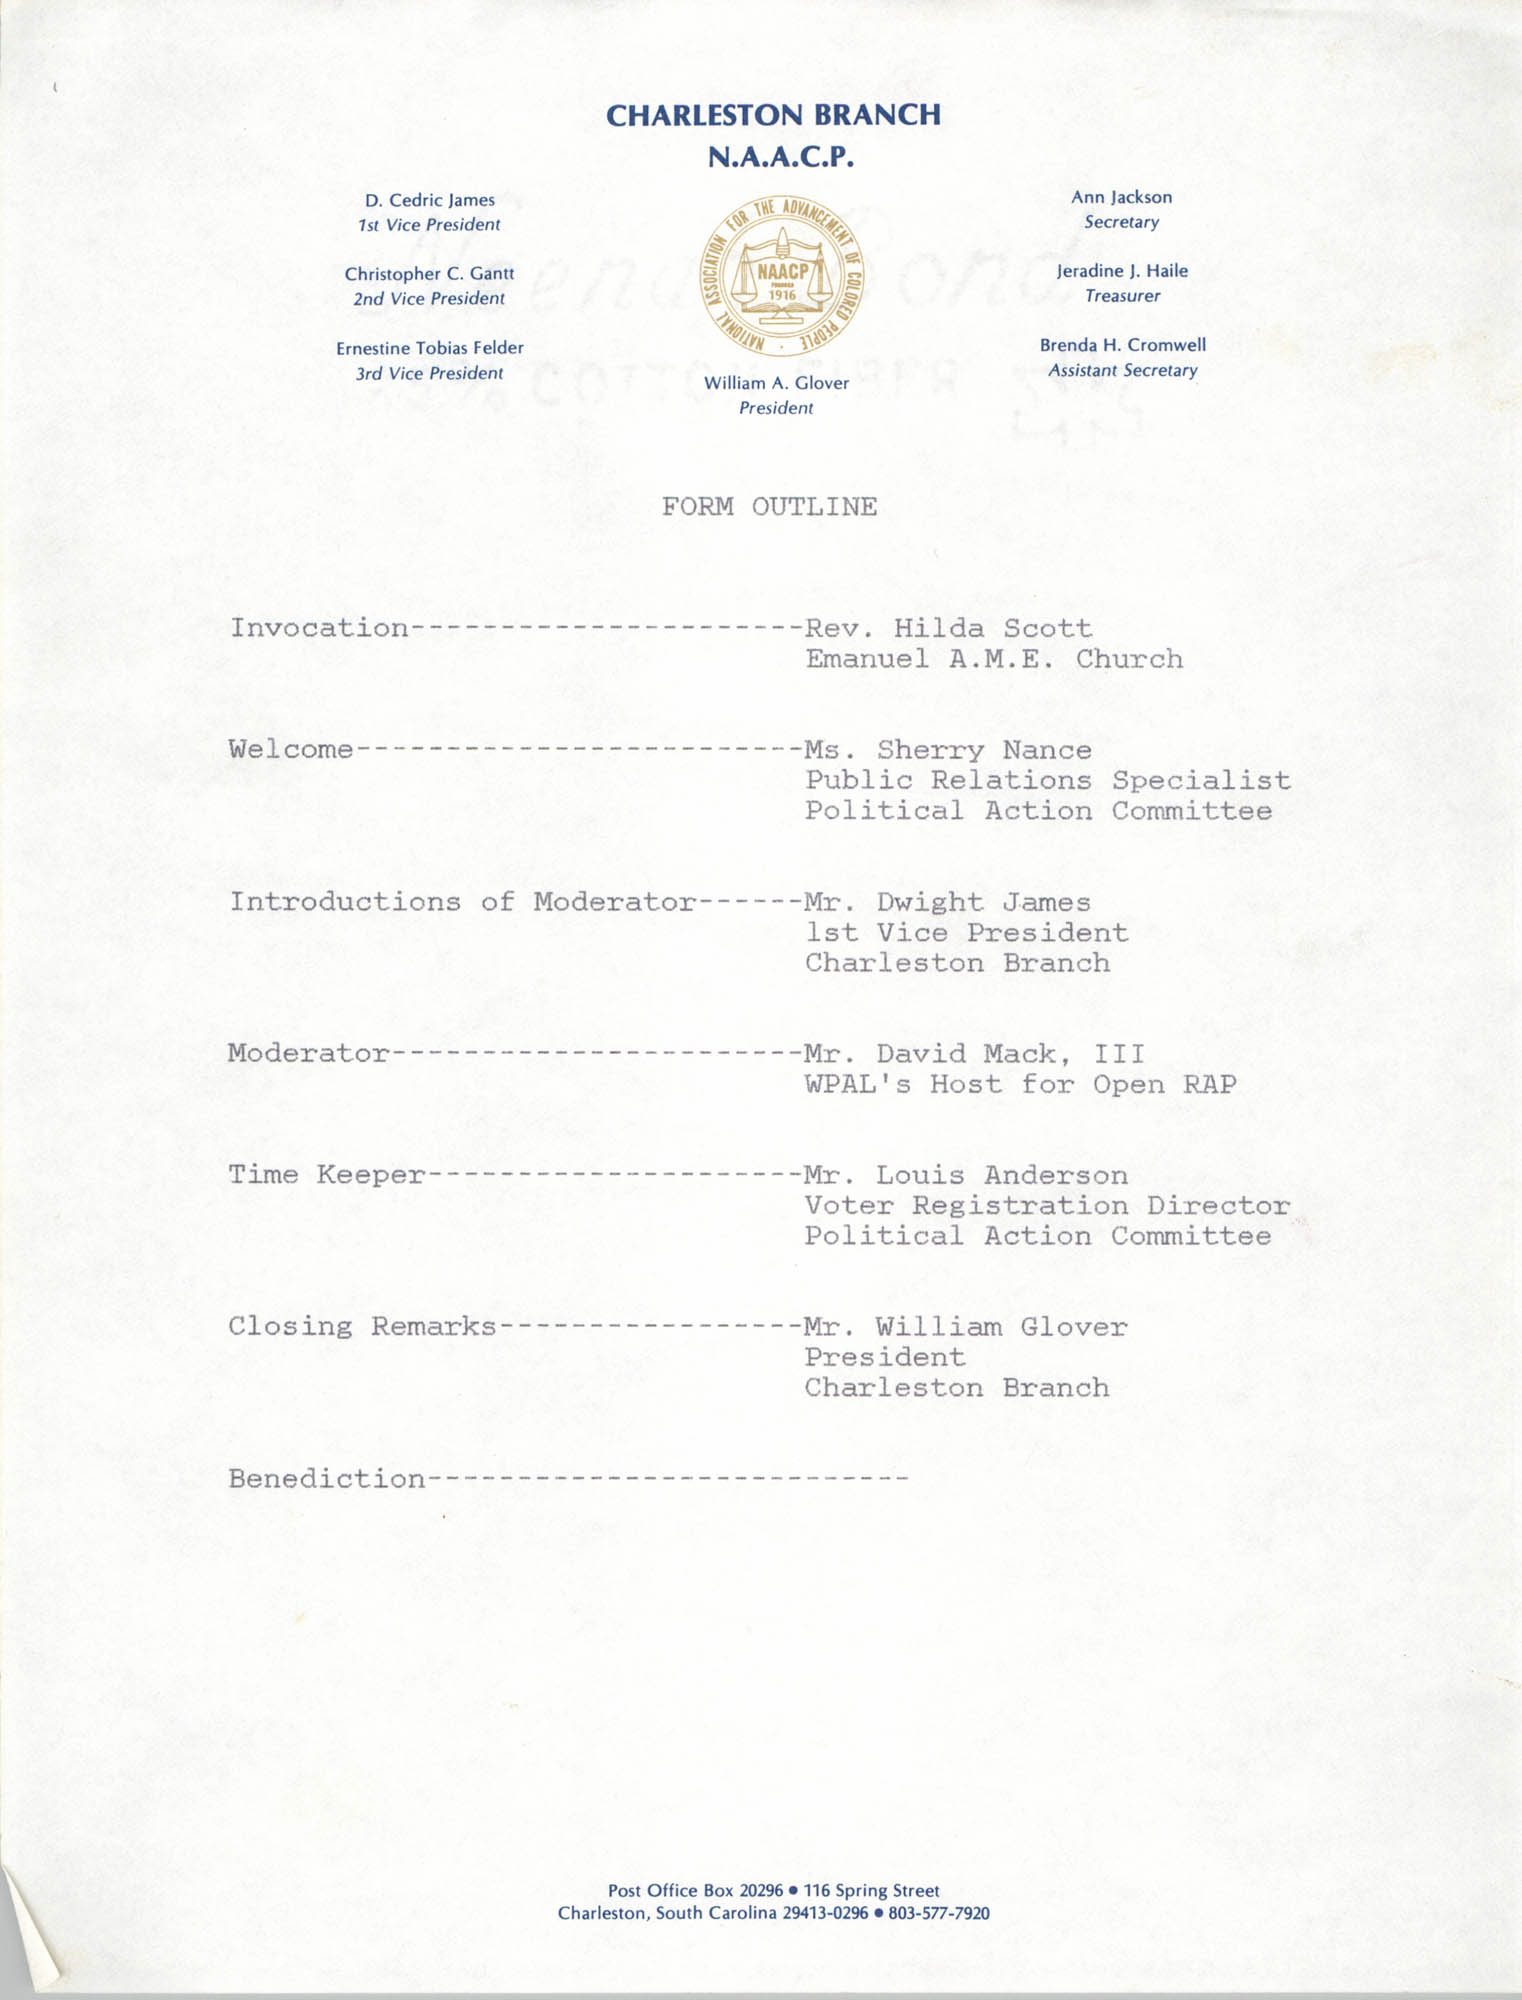 Form Outline, National Association for the Advancement of Colored People